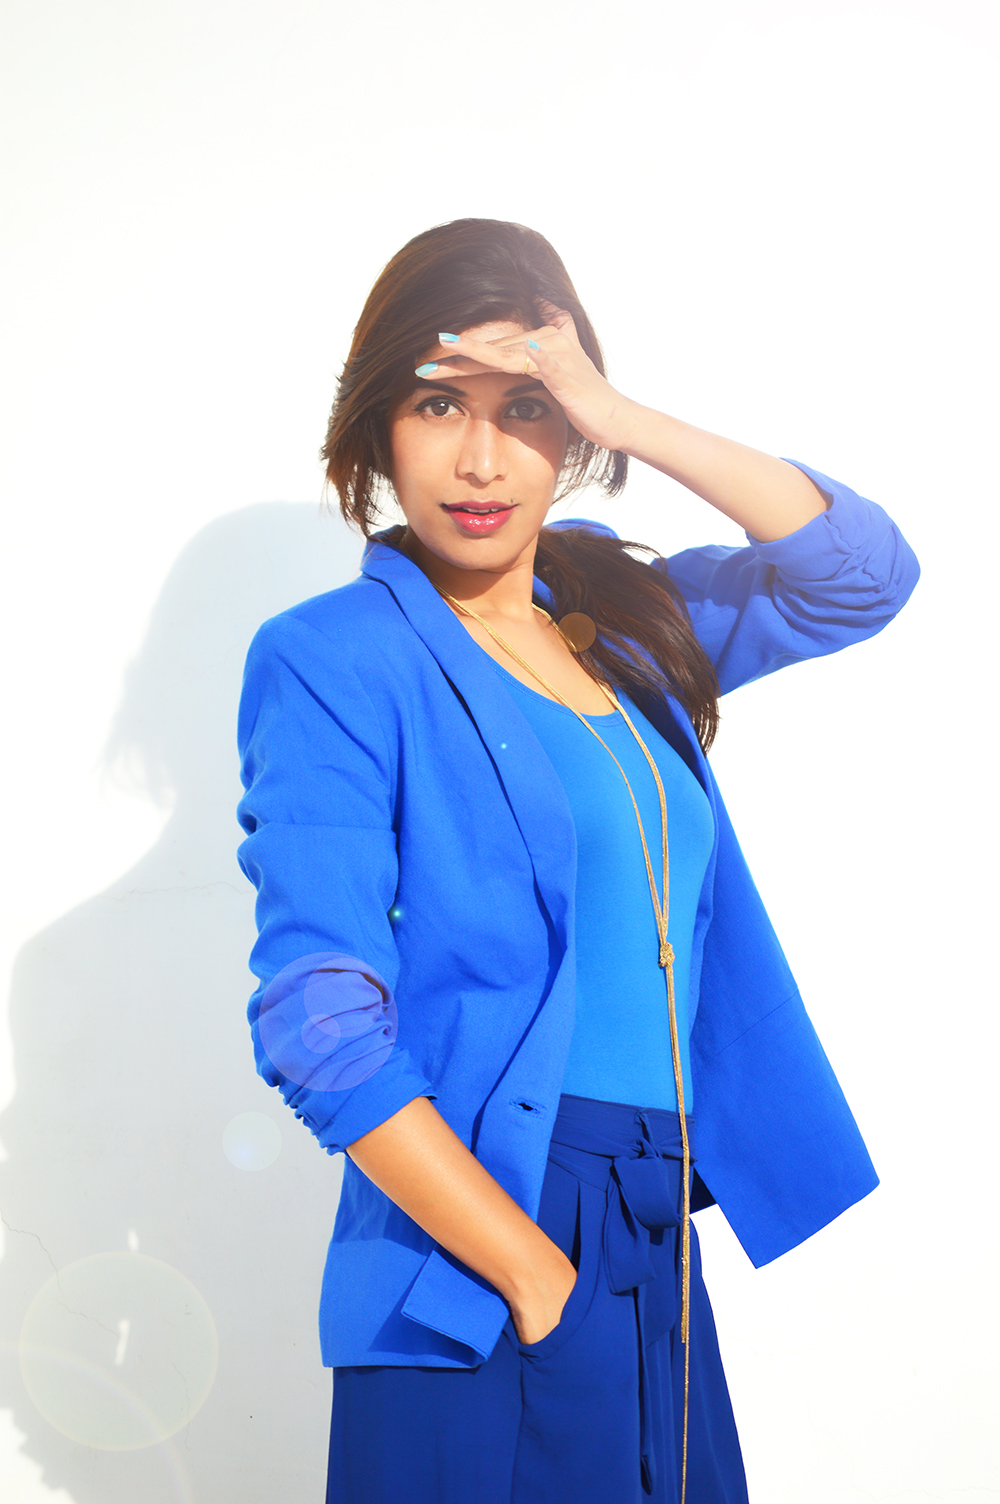 Fashion, Style, Indian Fashion Blog, Fashion Photgraphy, Outfit post, Summer Fashion, Blue Palazzo Pants, Blue Blazer, Vero Moda Blazer, United Colors of Benneton Top, Stylish look post